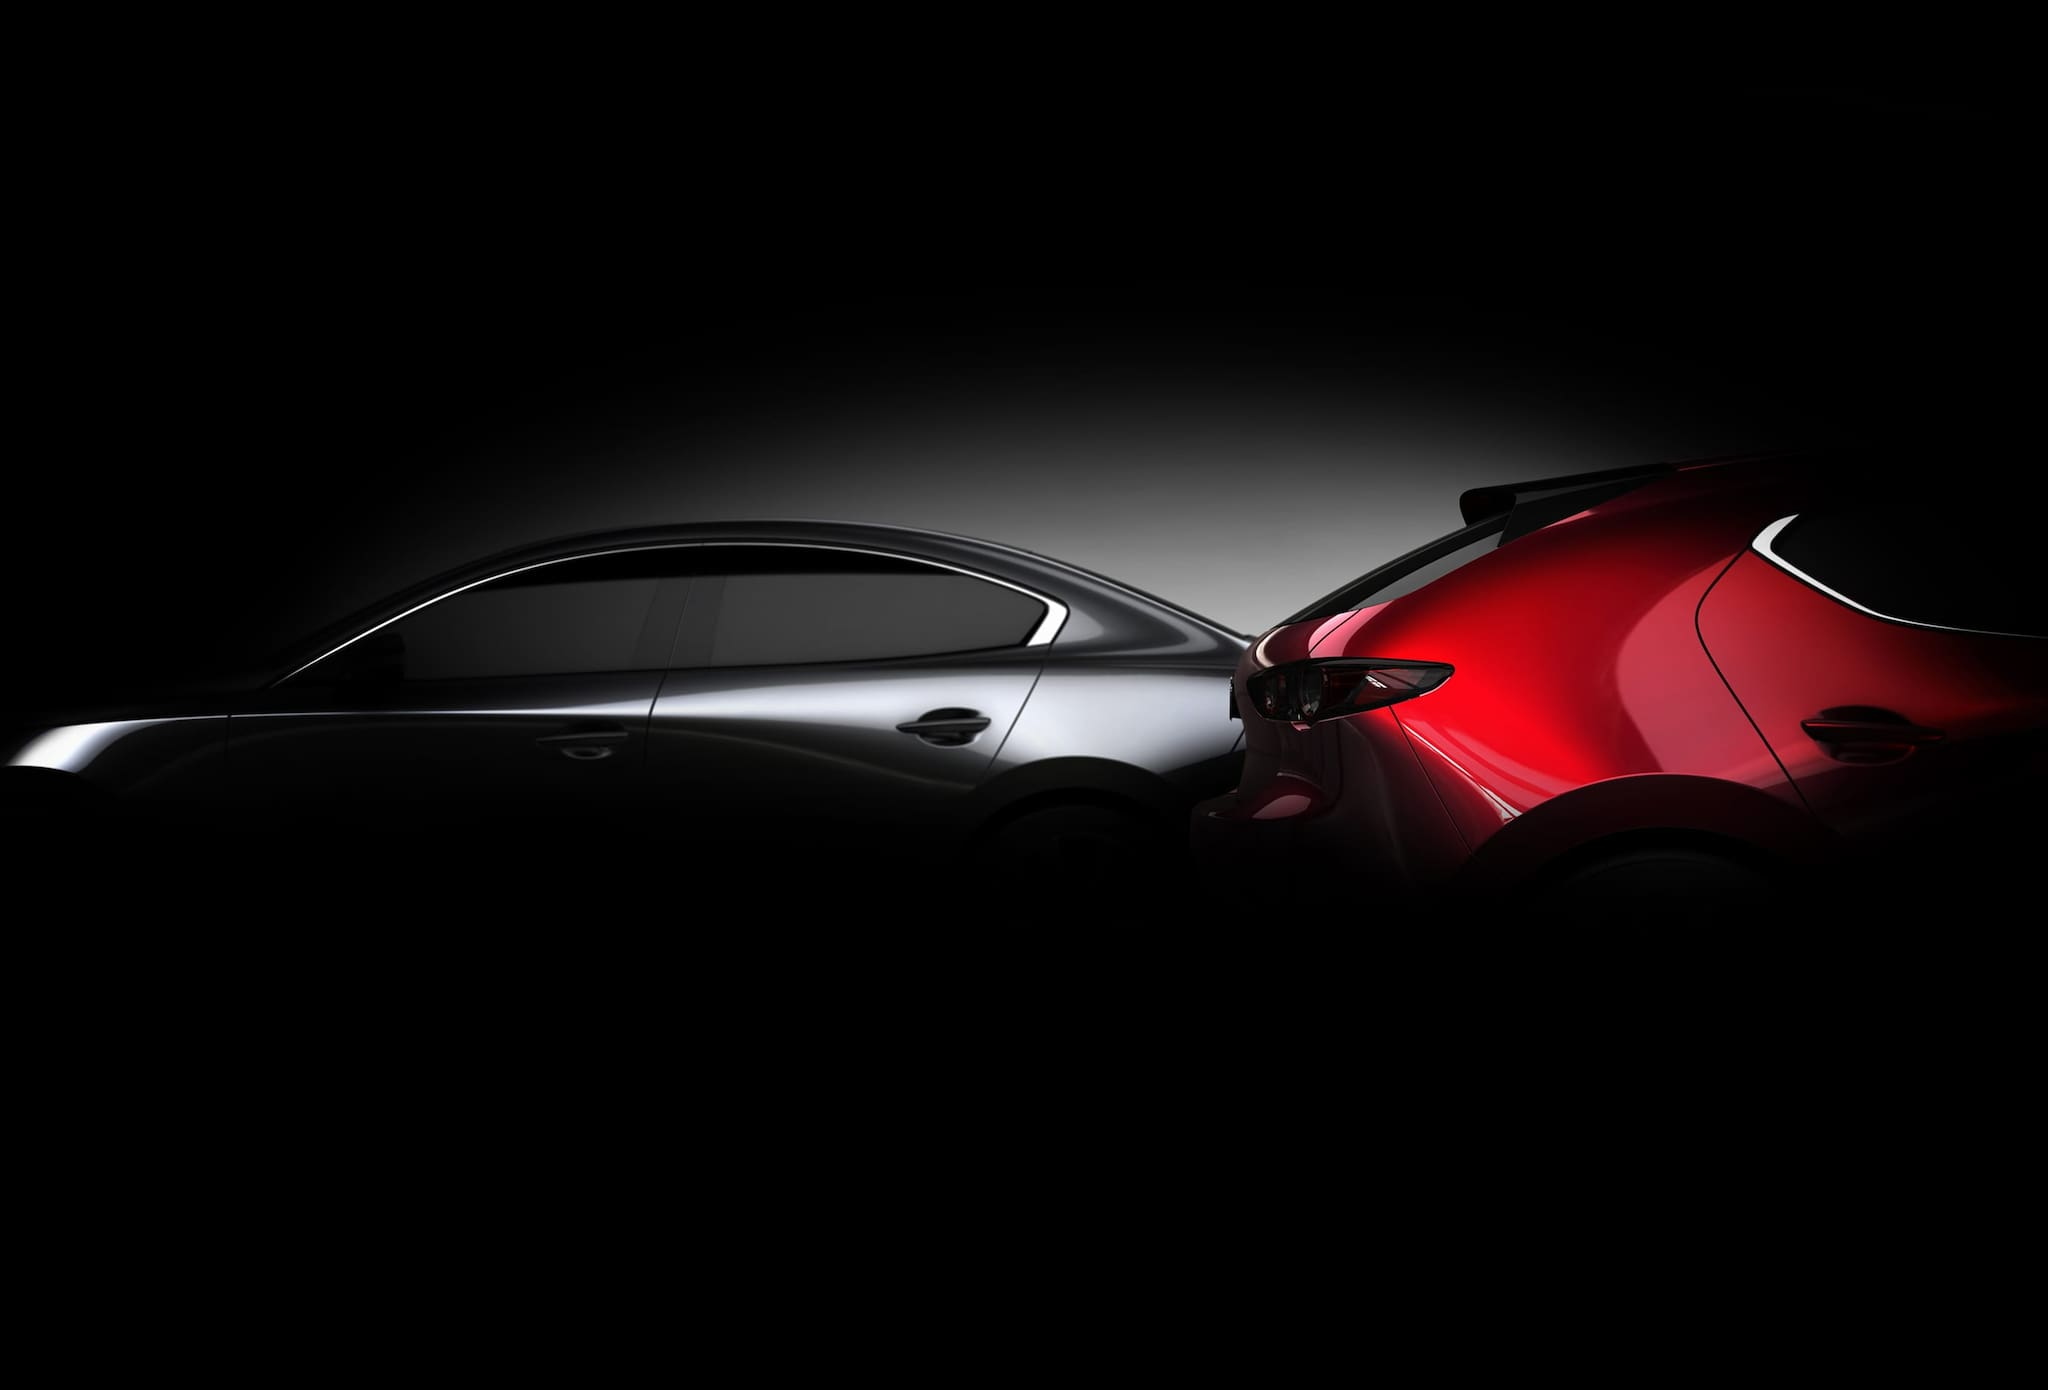 All-New Mazda3 to Debut at LA Auto Show This Month